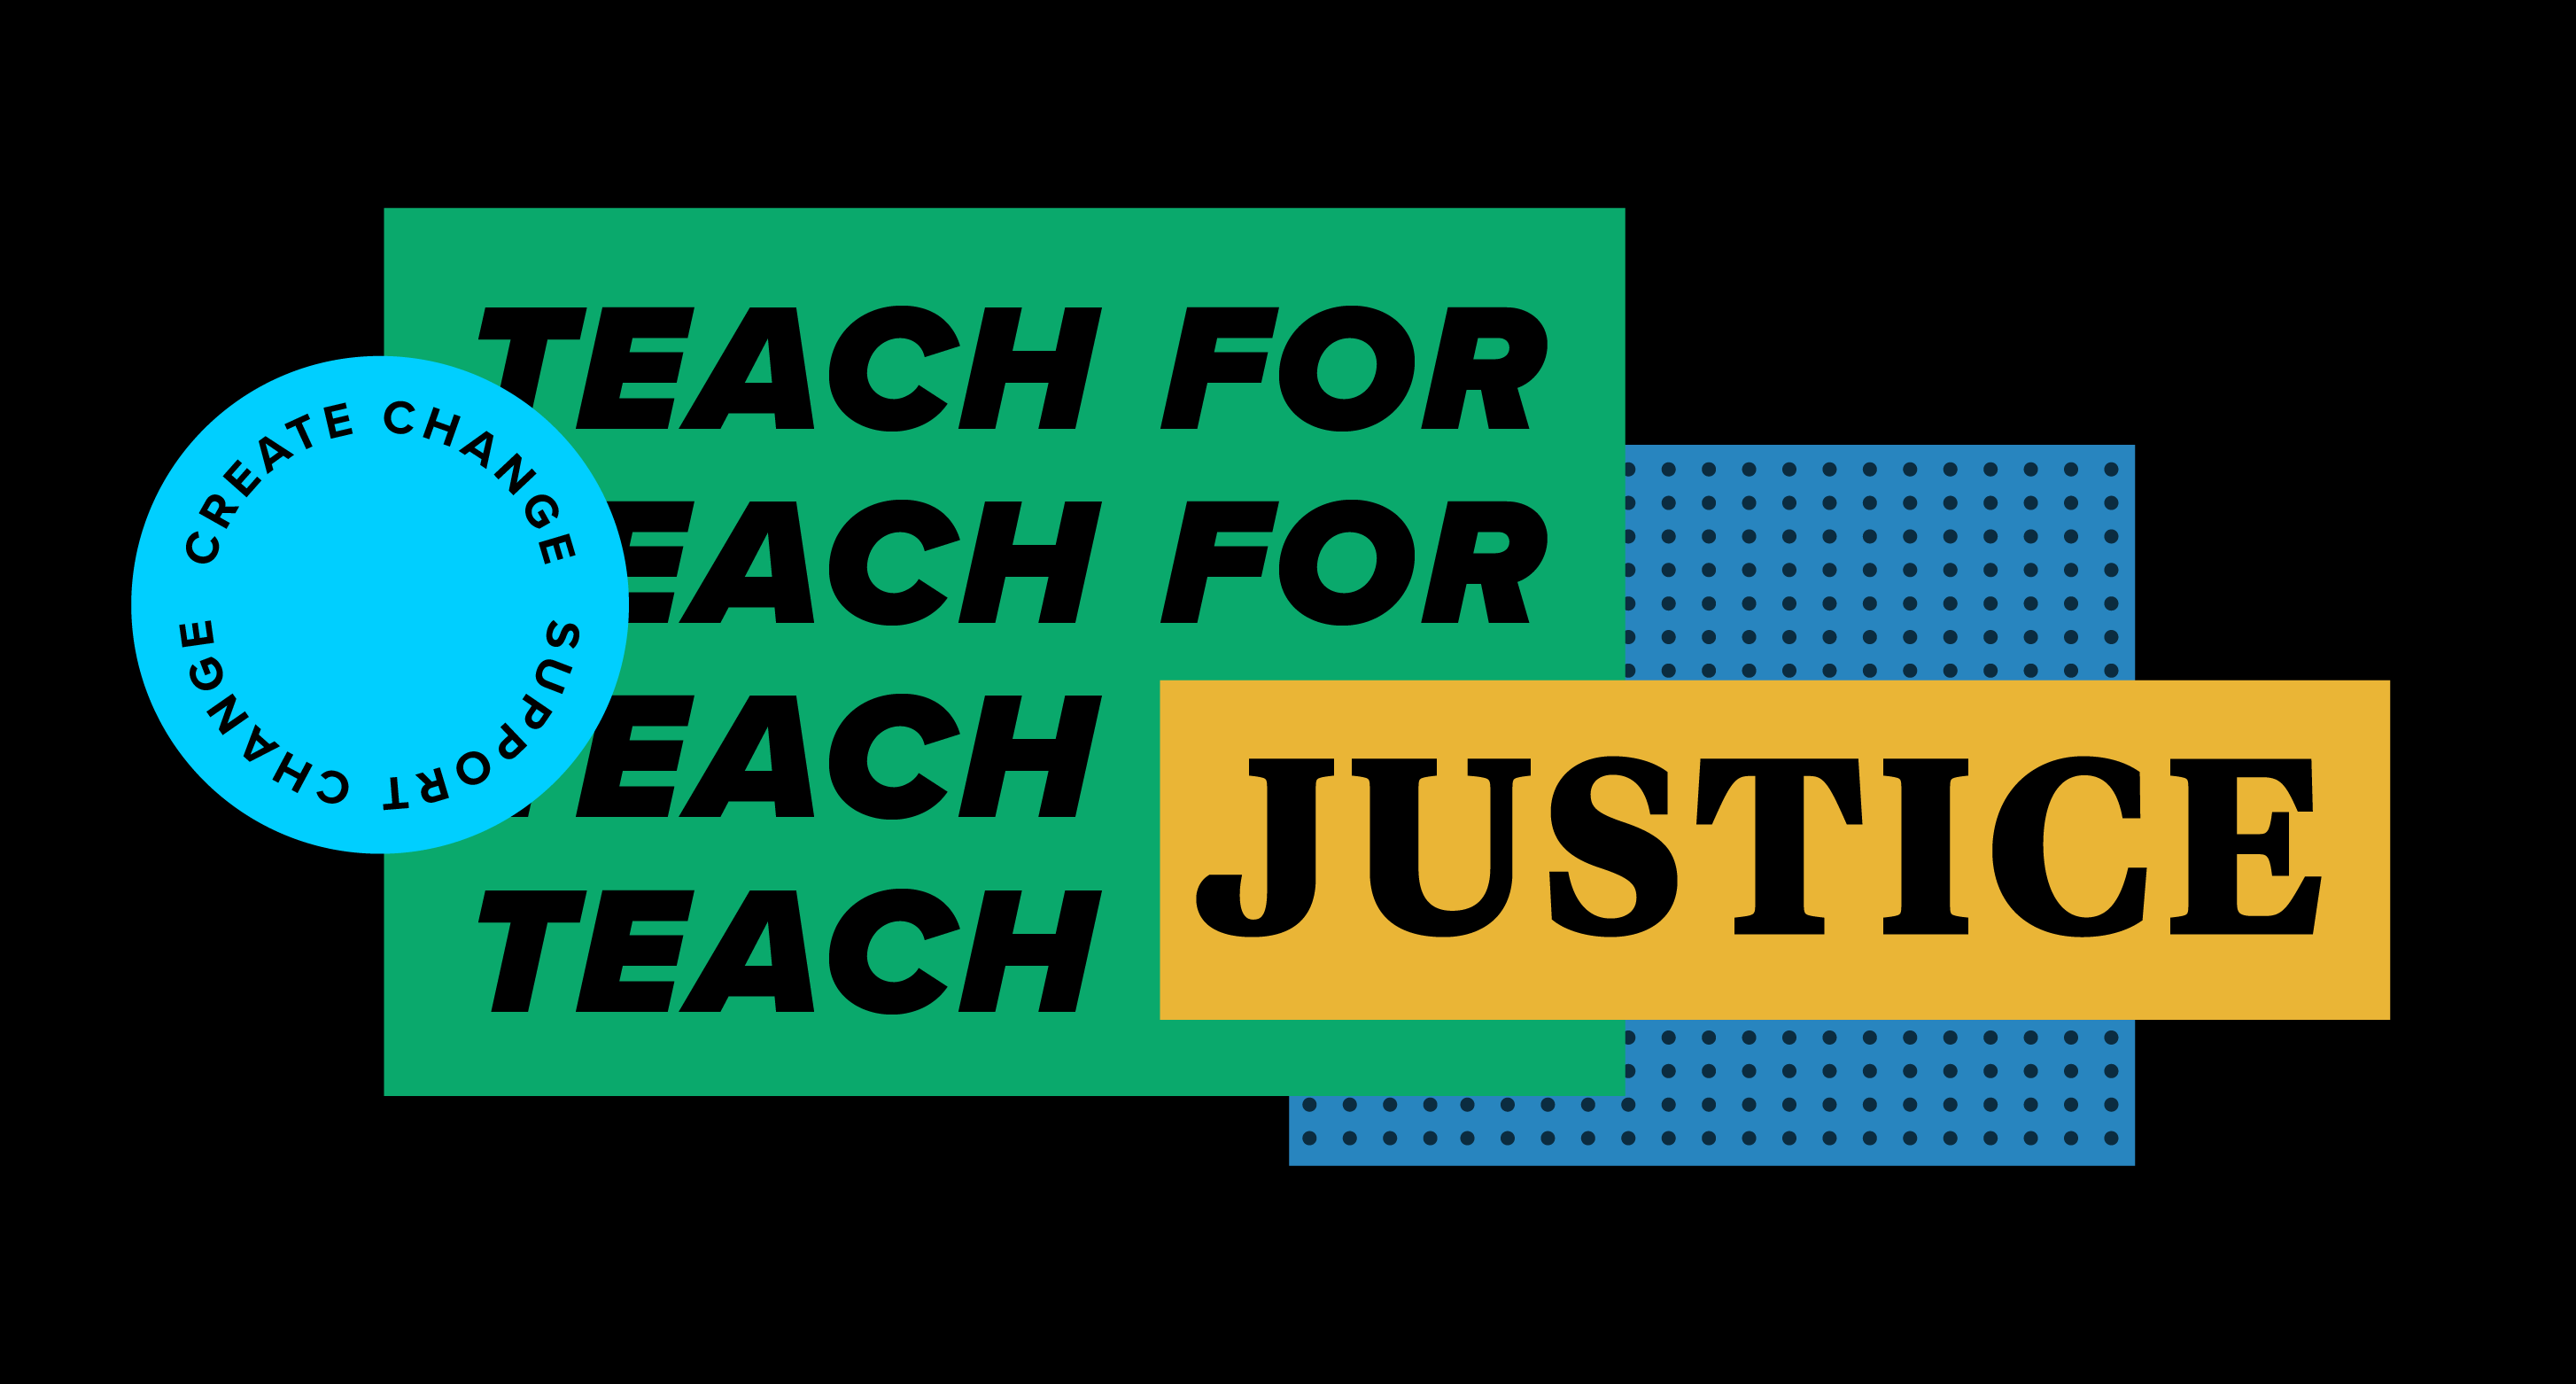 Teach for Justice